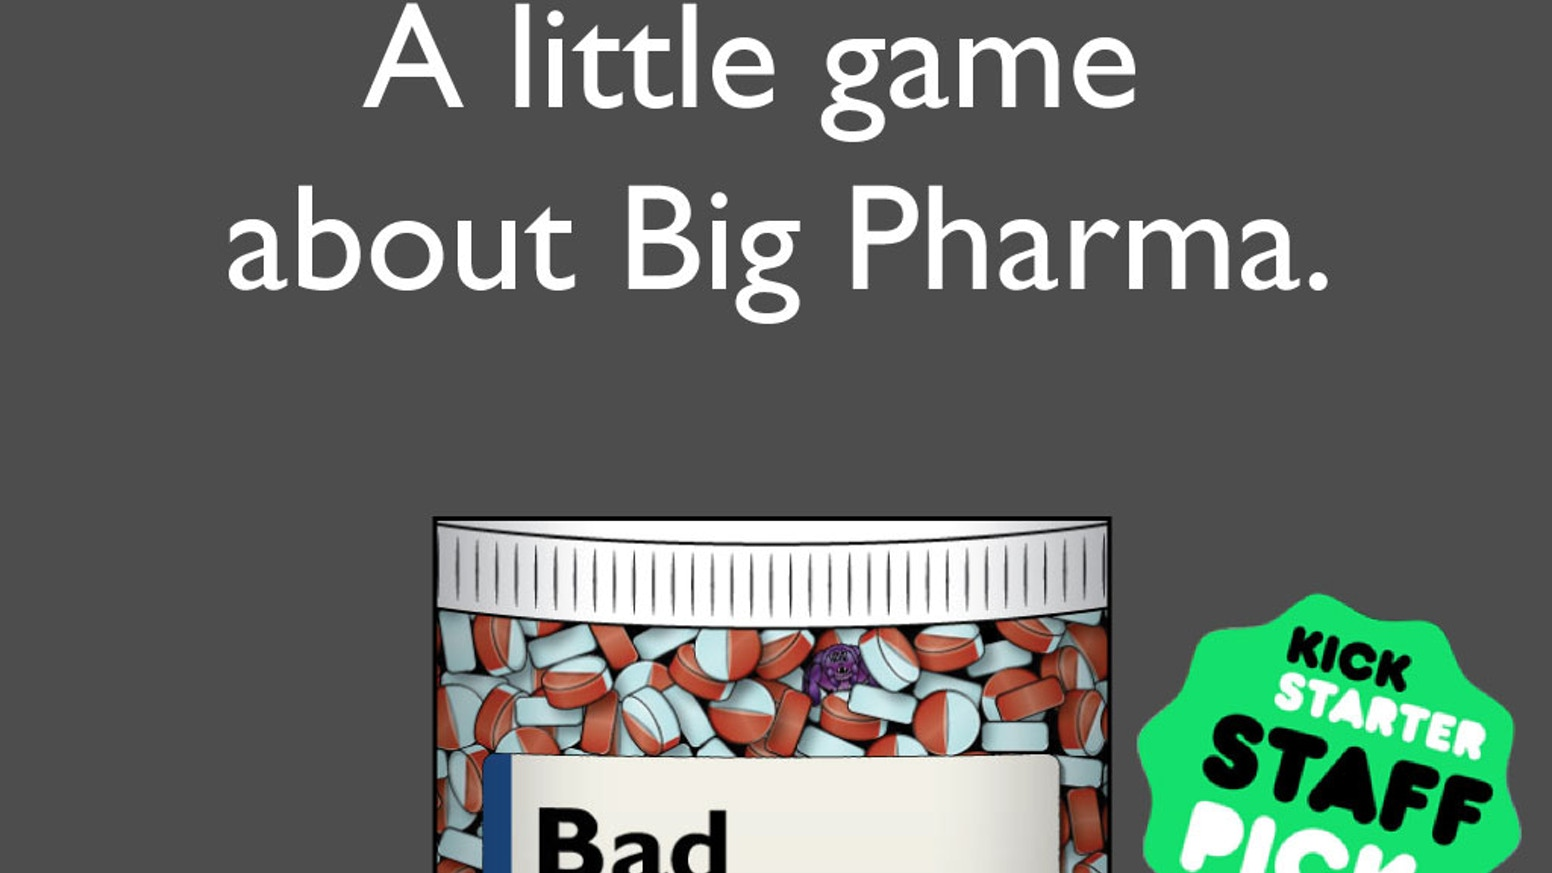 A party game where players are all pharmaceutical companies creating drugs with awful side effects.